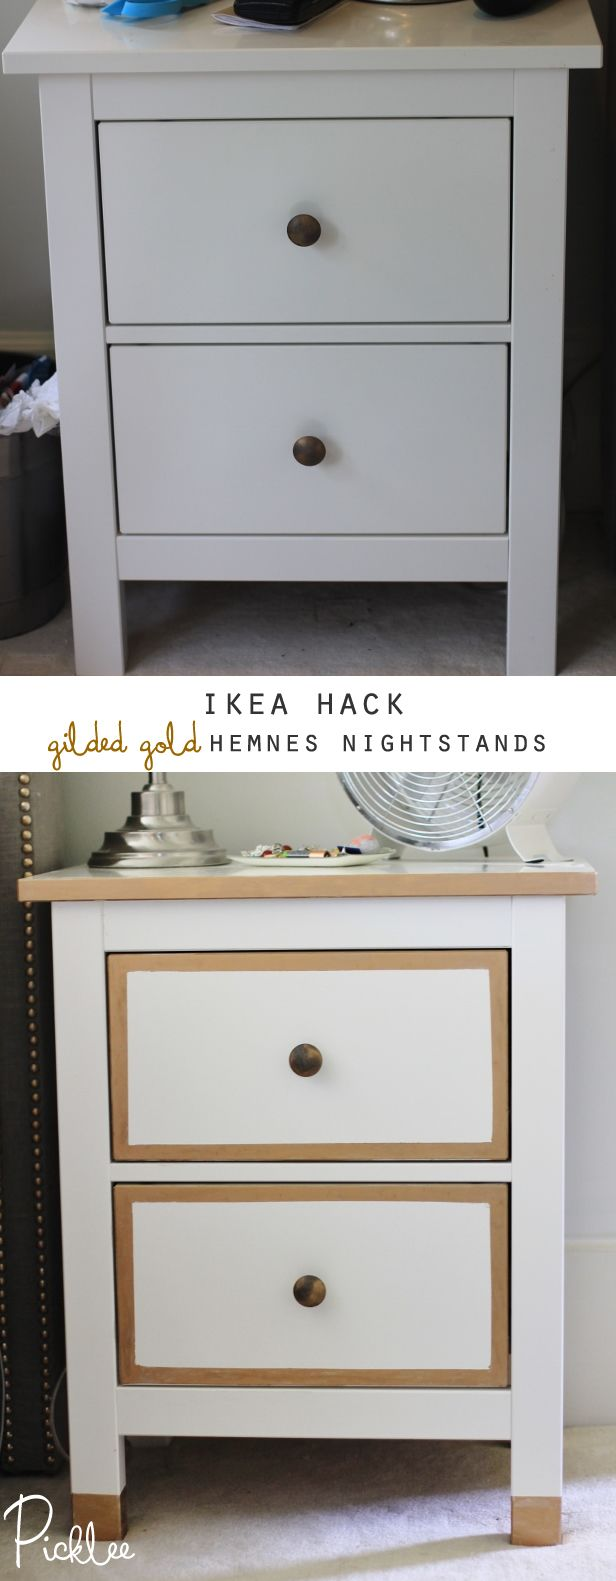 Ikea bedroom furniture chest of drawers - Share The Been A Bit Since We Ve Shared A Post Here On Picklee Sometimes Life Just Gets In The Way Of Things But We Are Back Today With A Fabulous Ikea